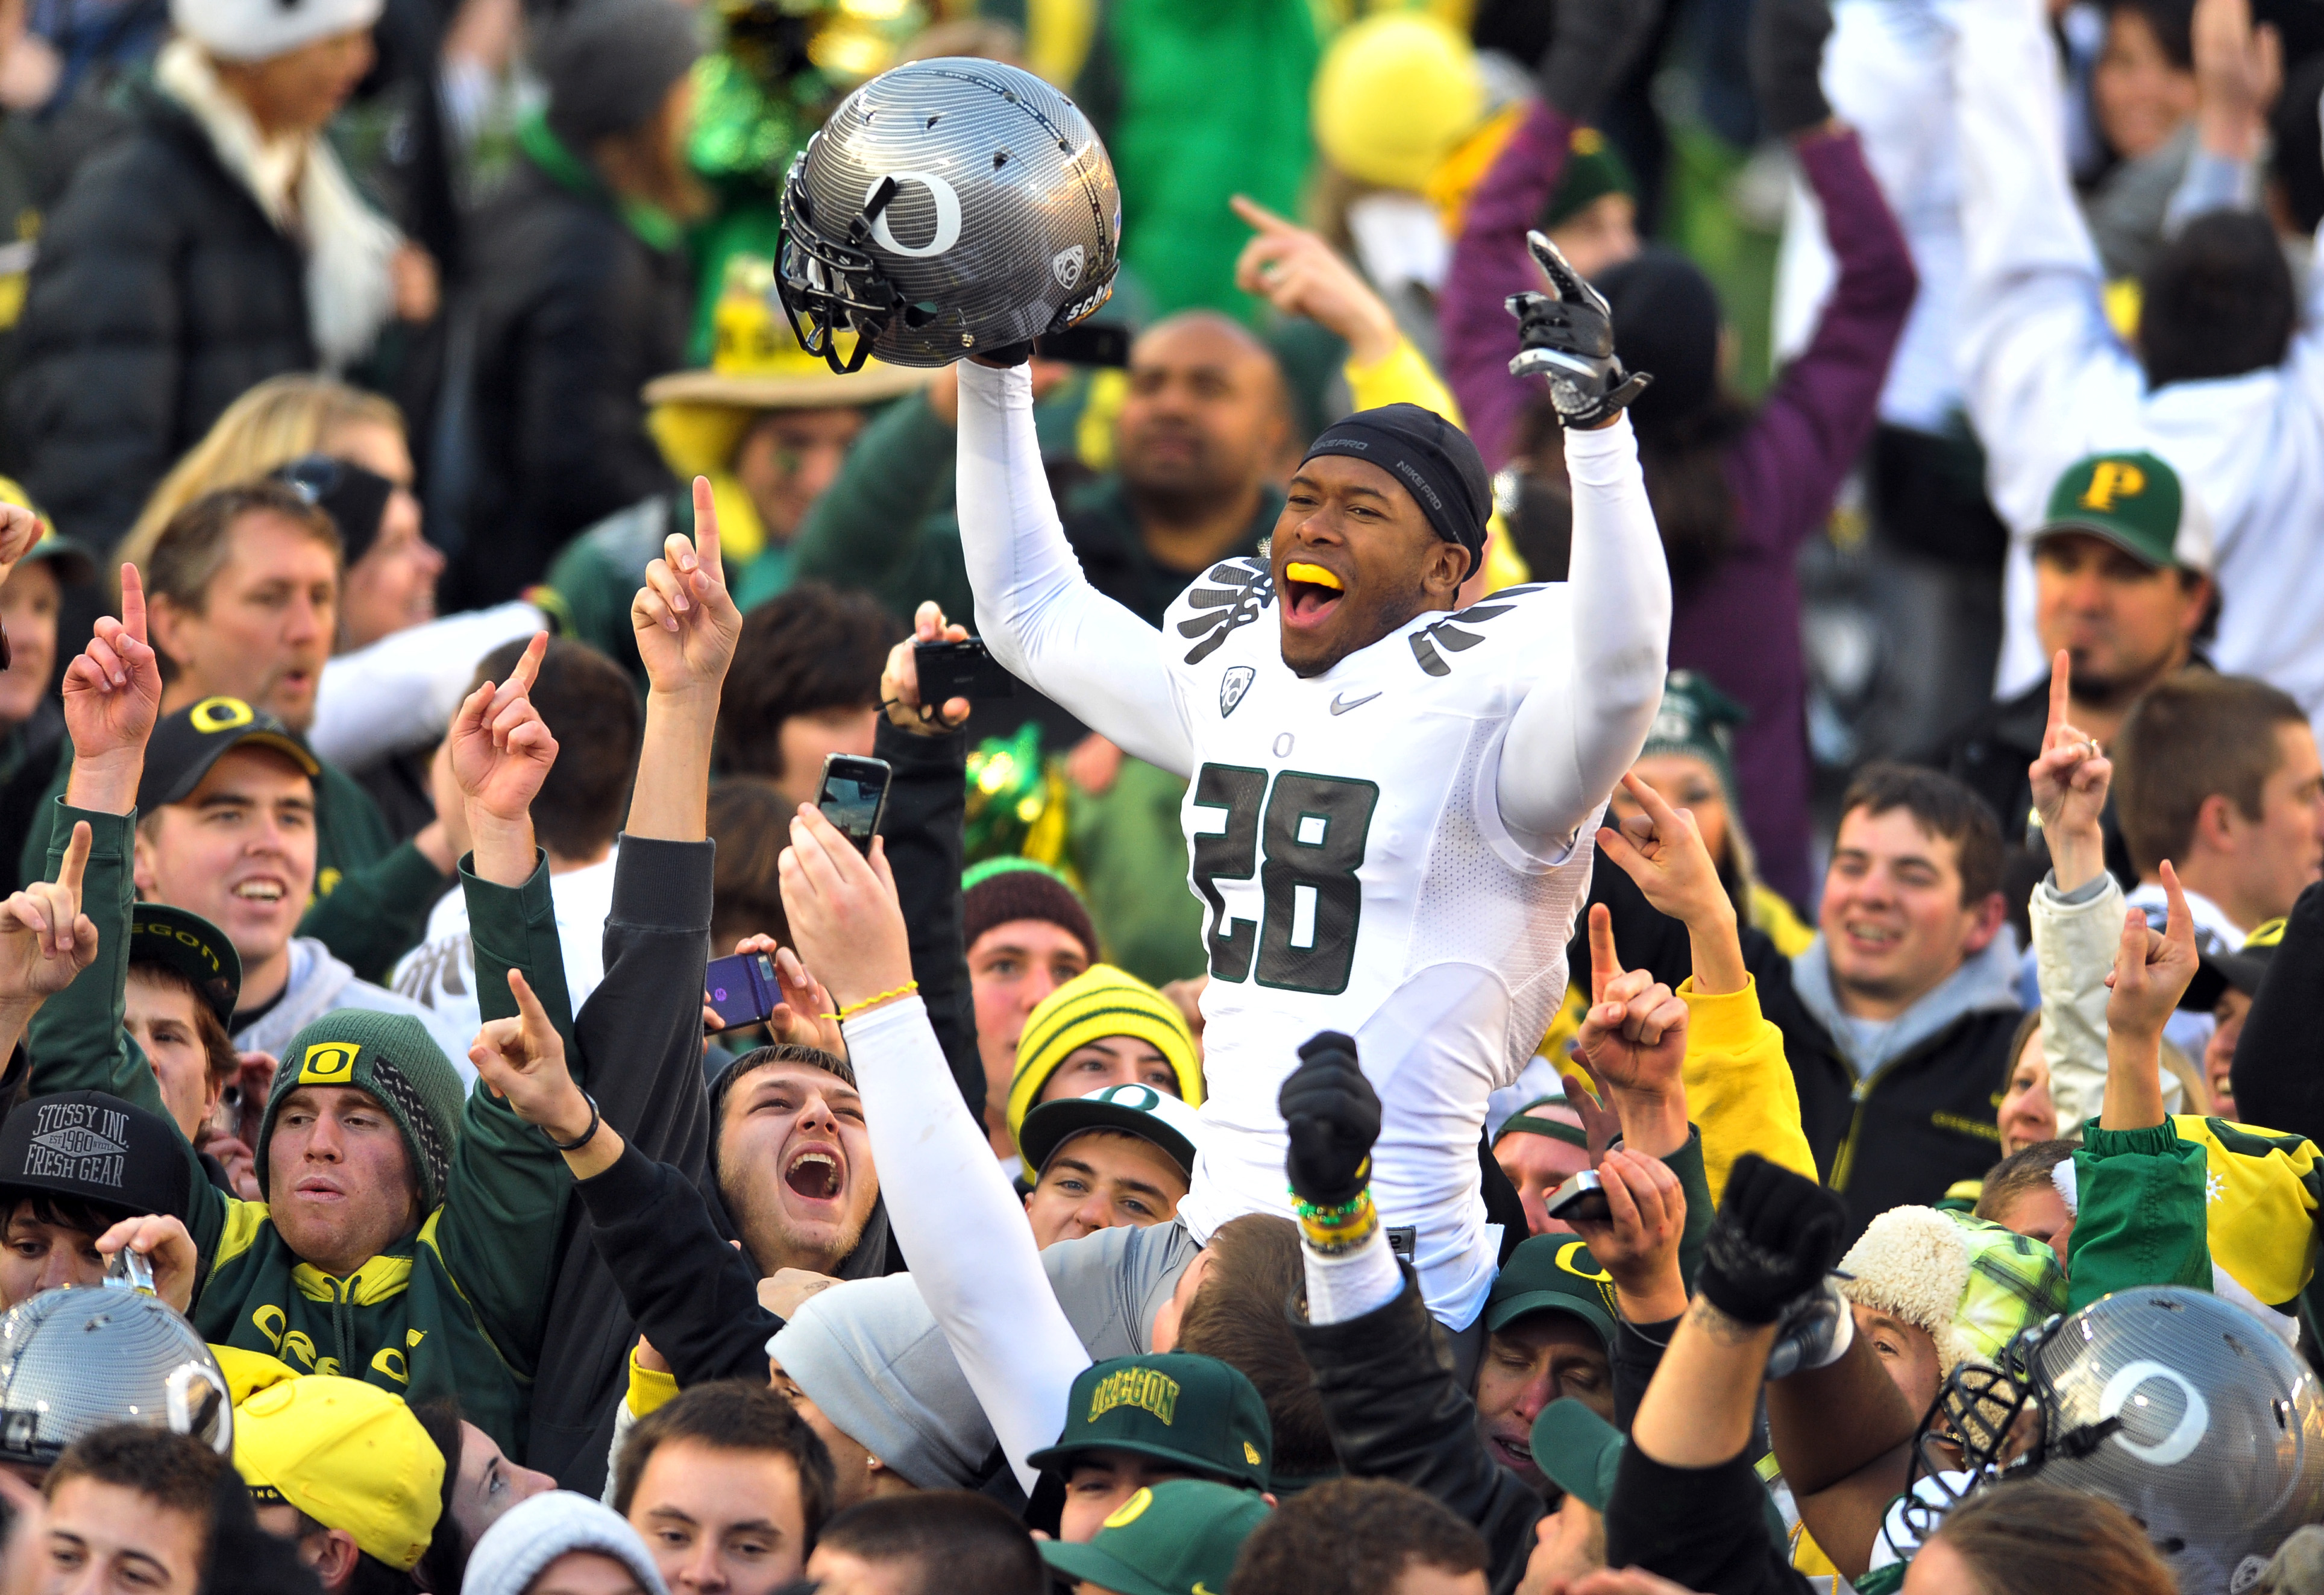 How will Oregon fare against the men from Auburn? Only time will tell?